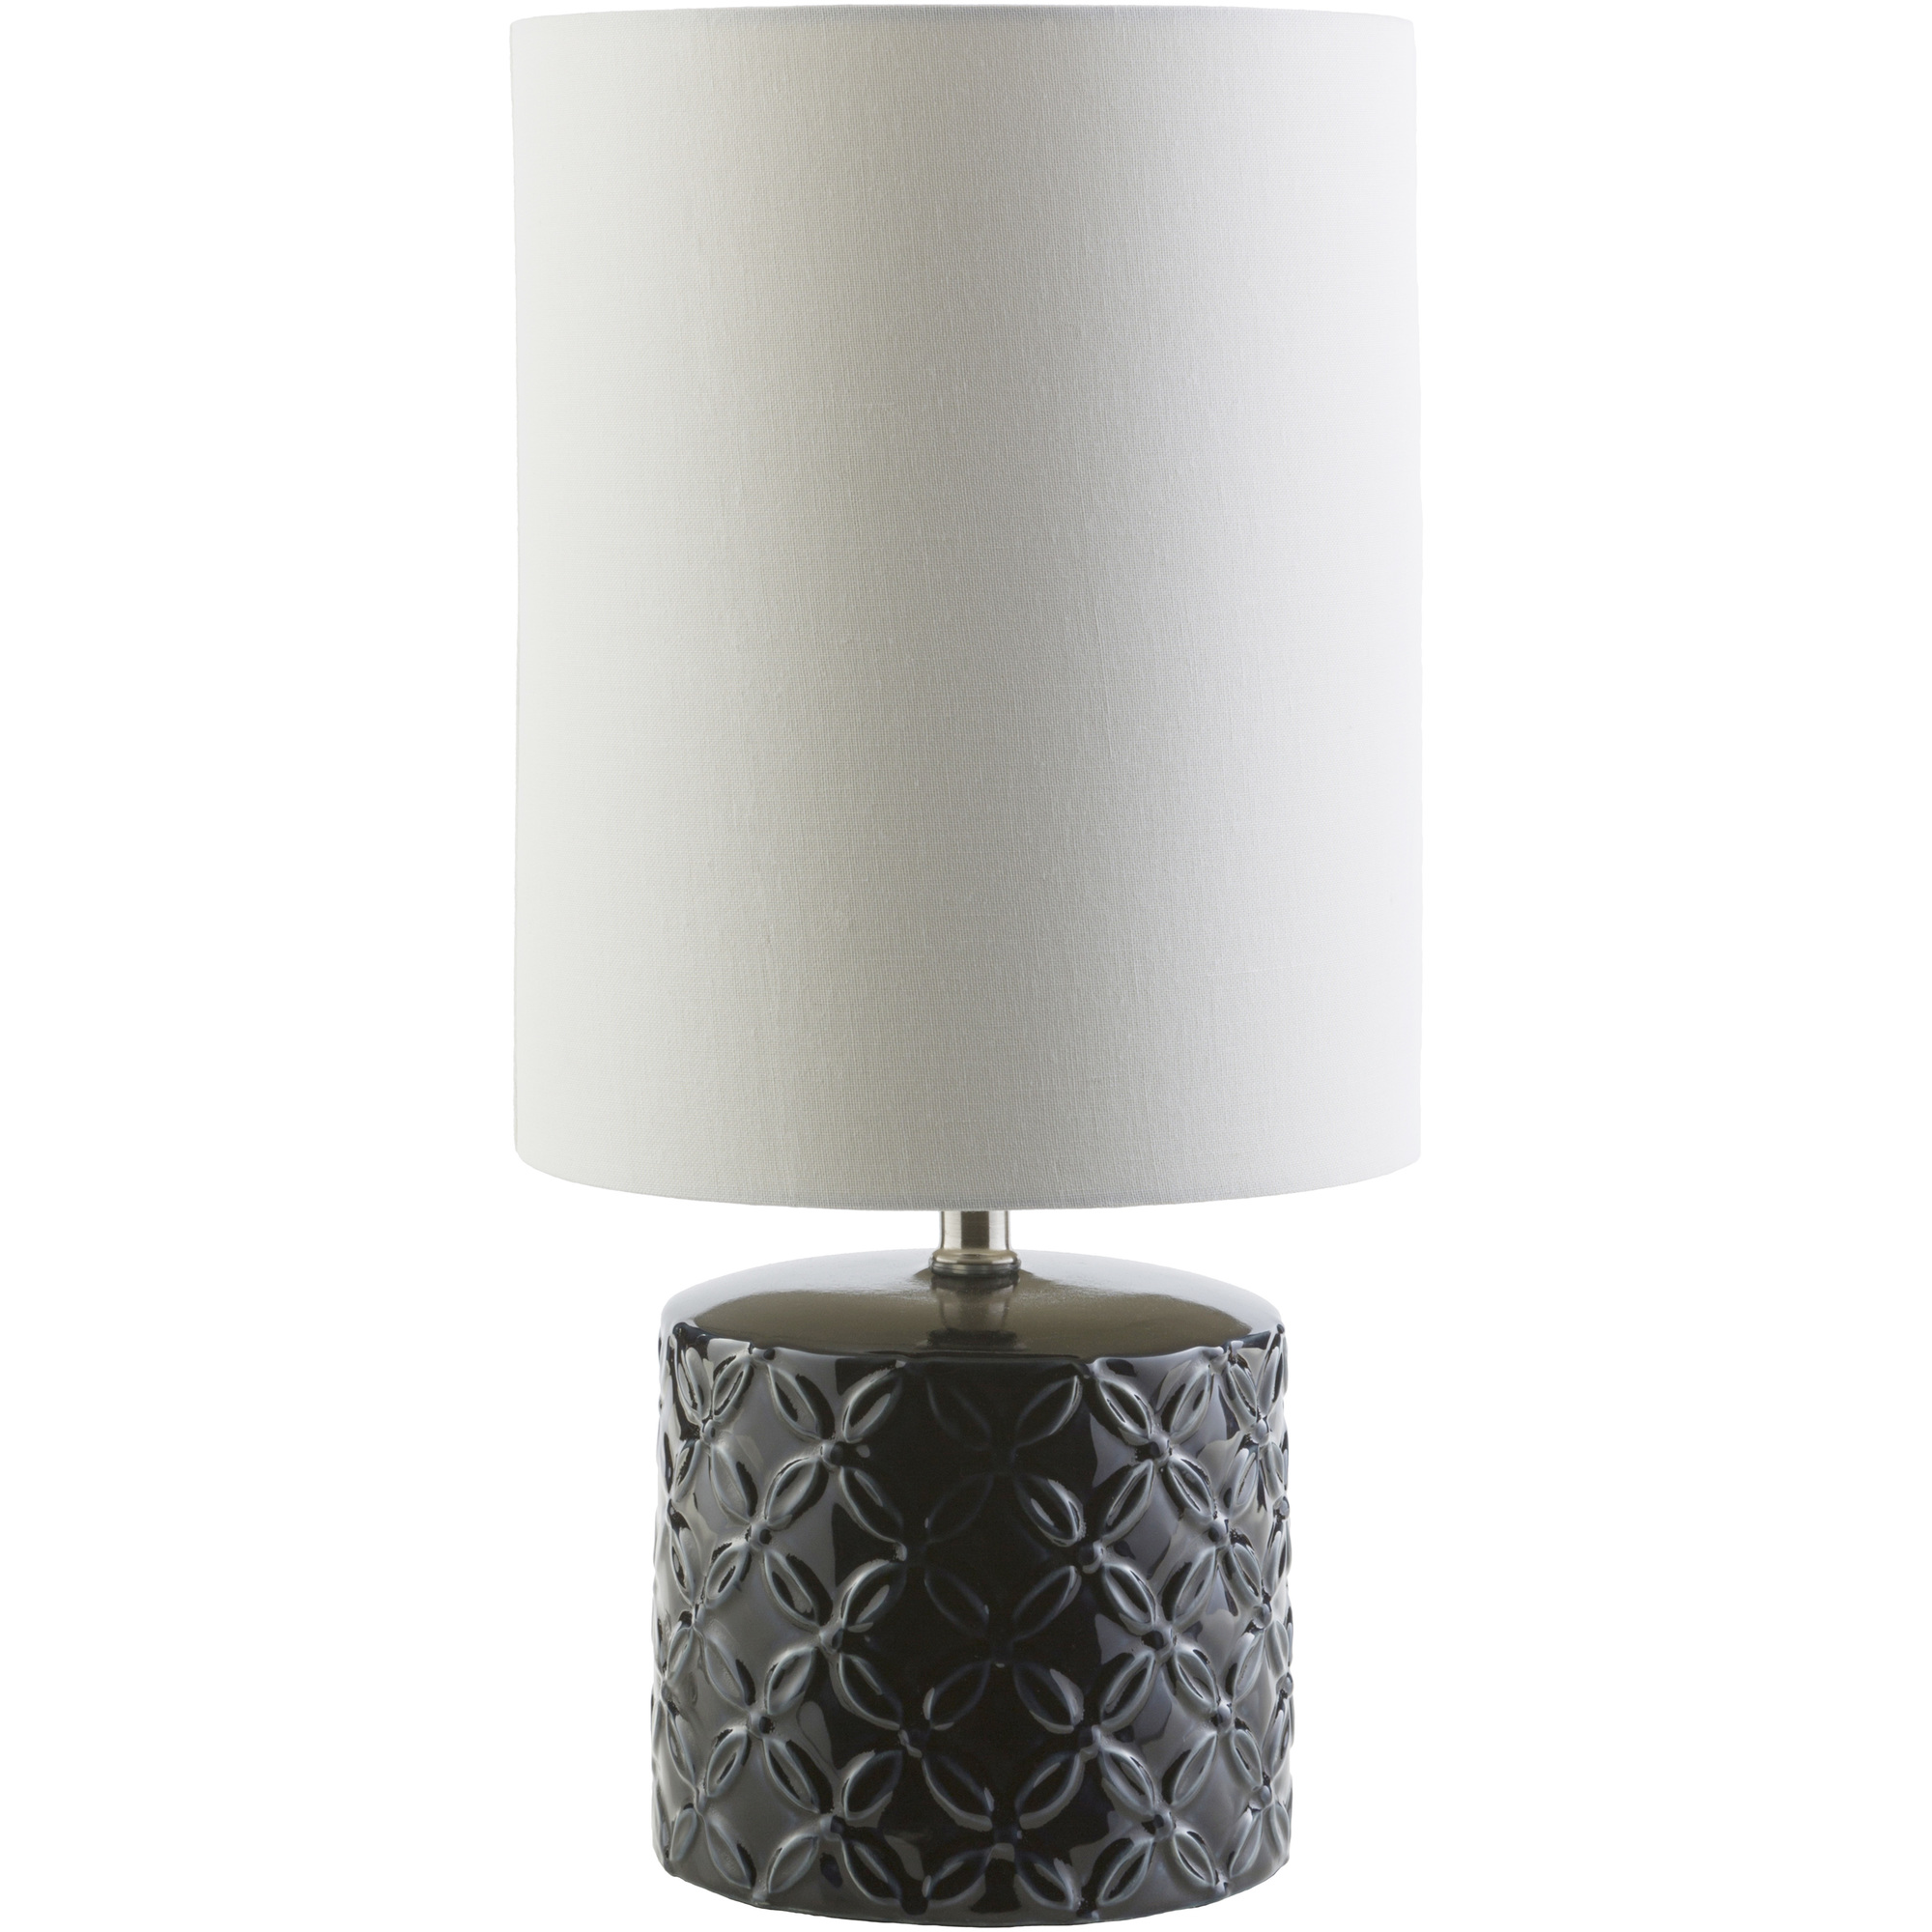 Art of Knot Volta Novelty Table Lamp by Art of Knot